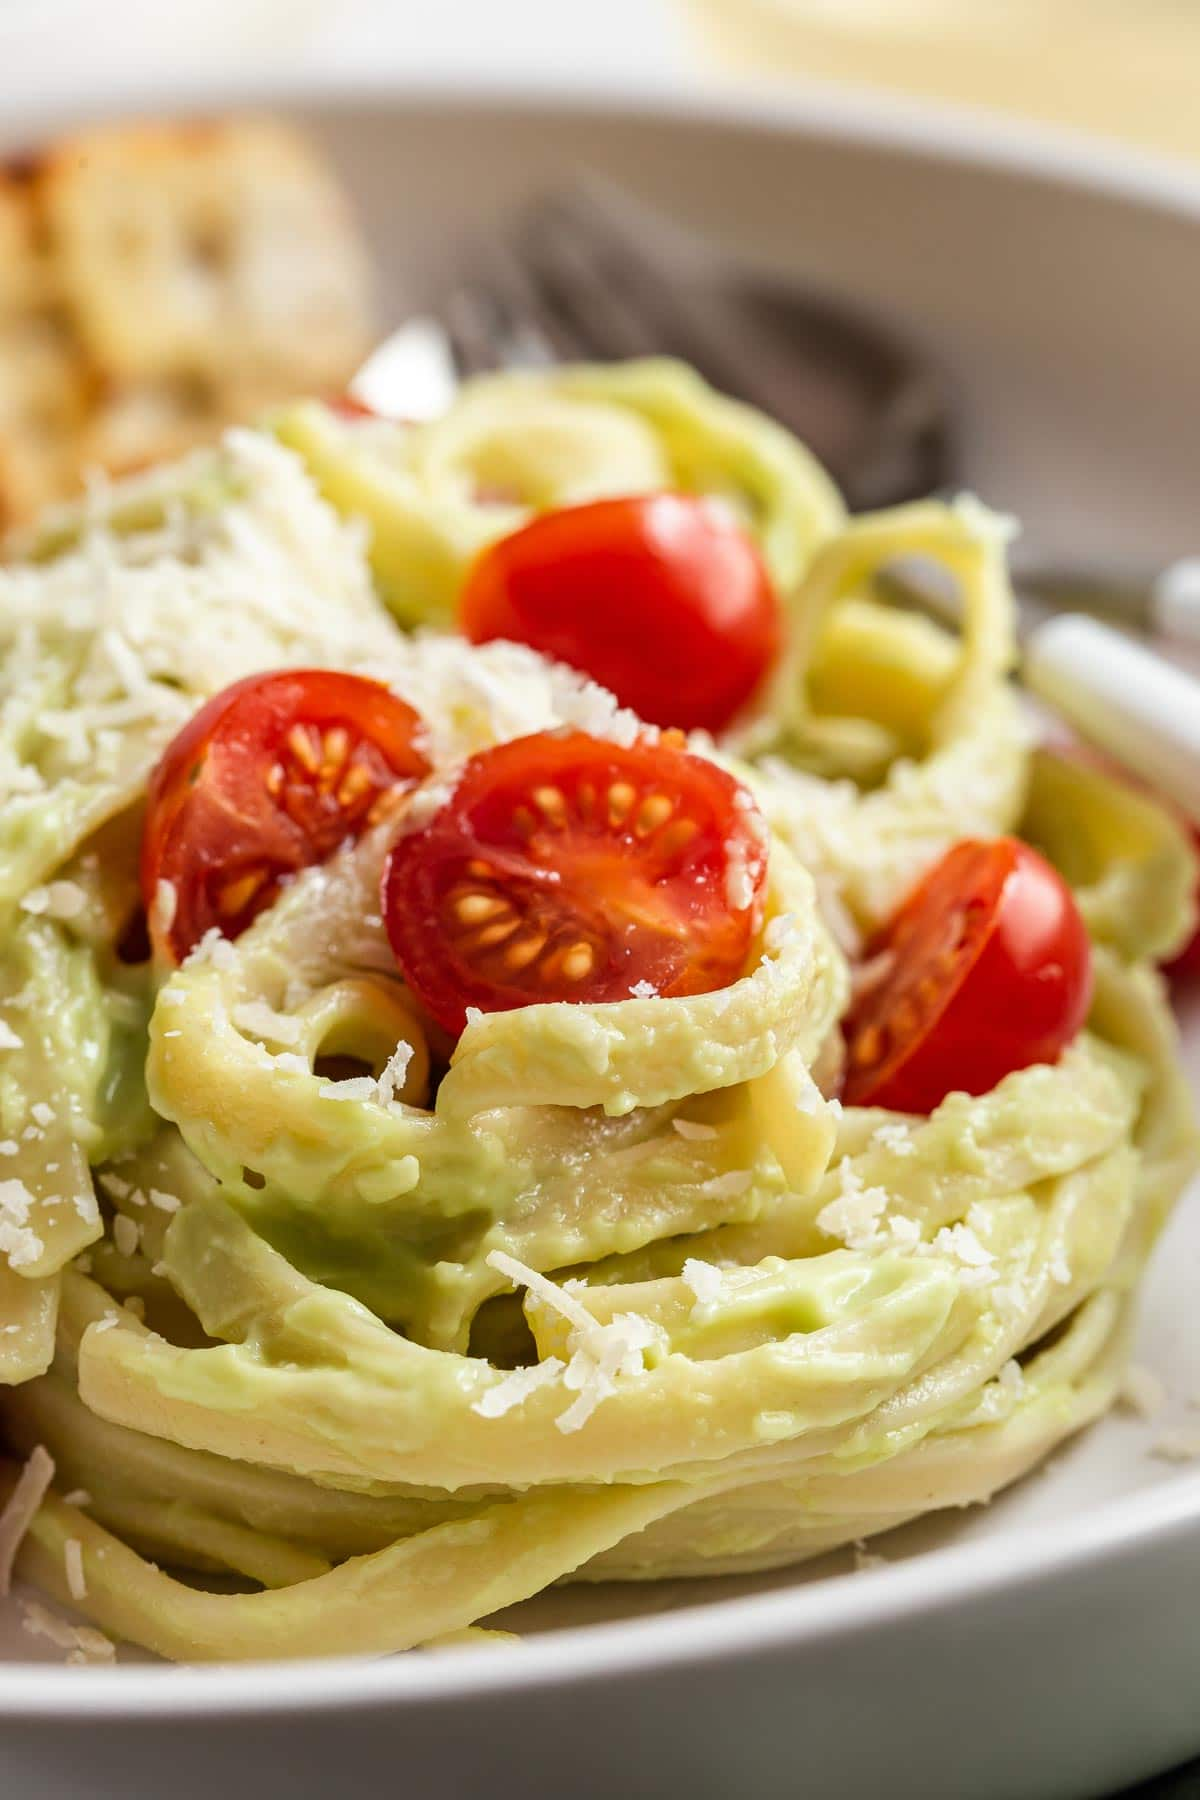 Avocado sauce on noodles with cherry tomatoes.